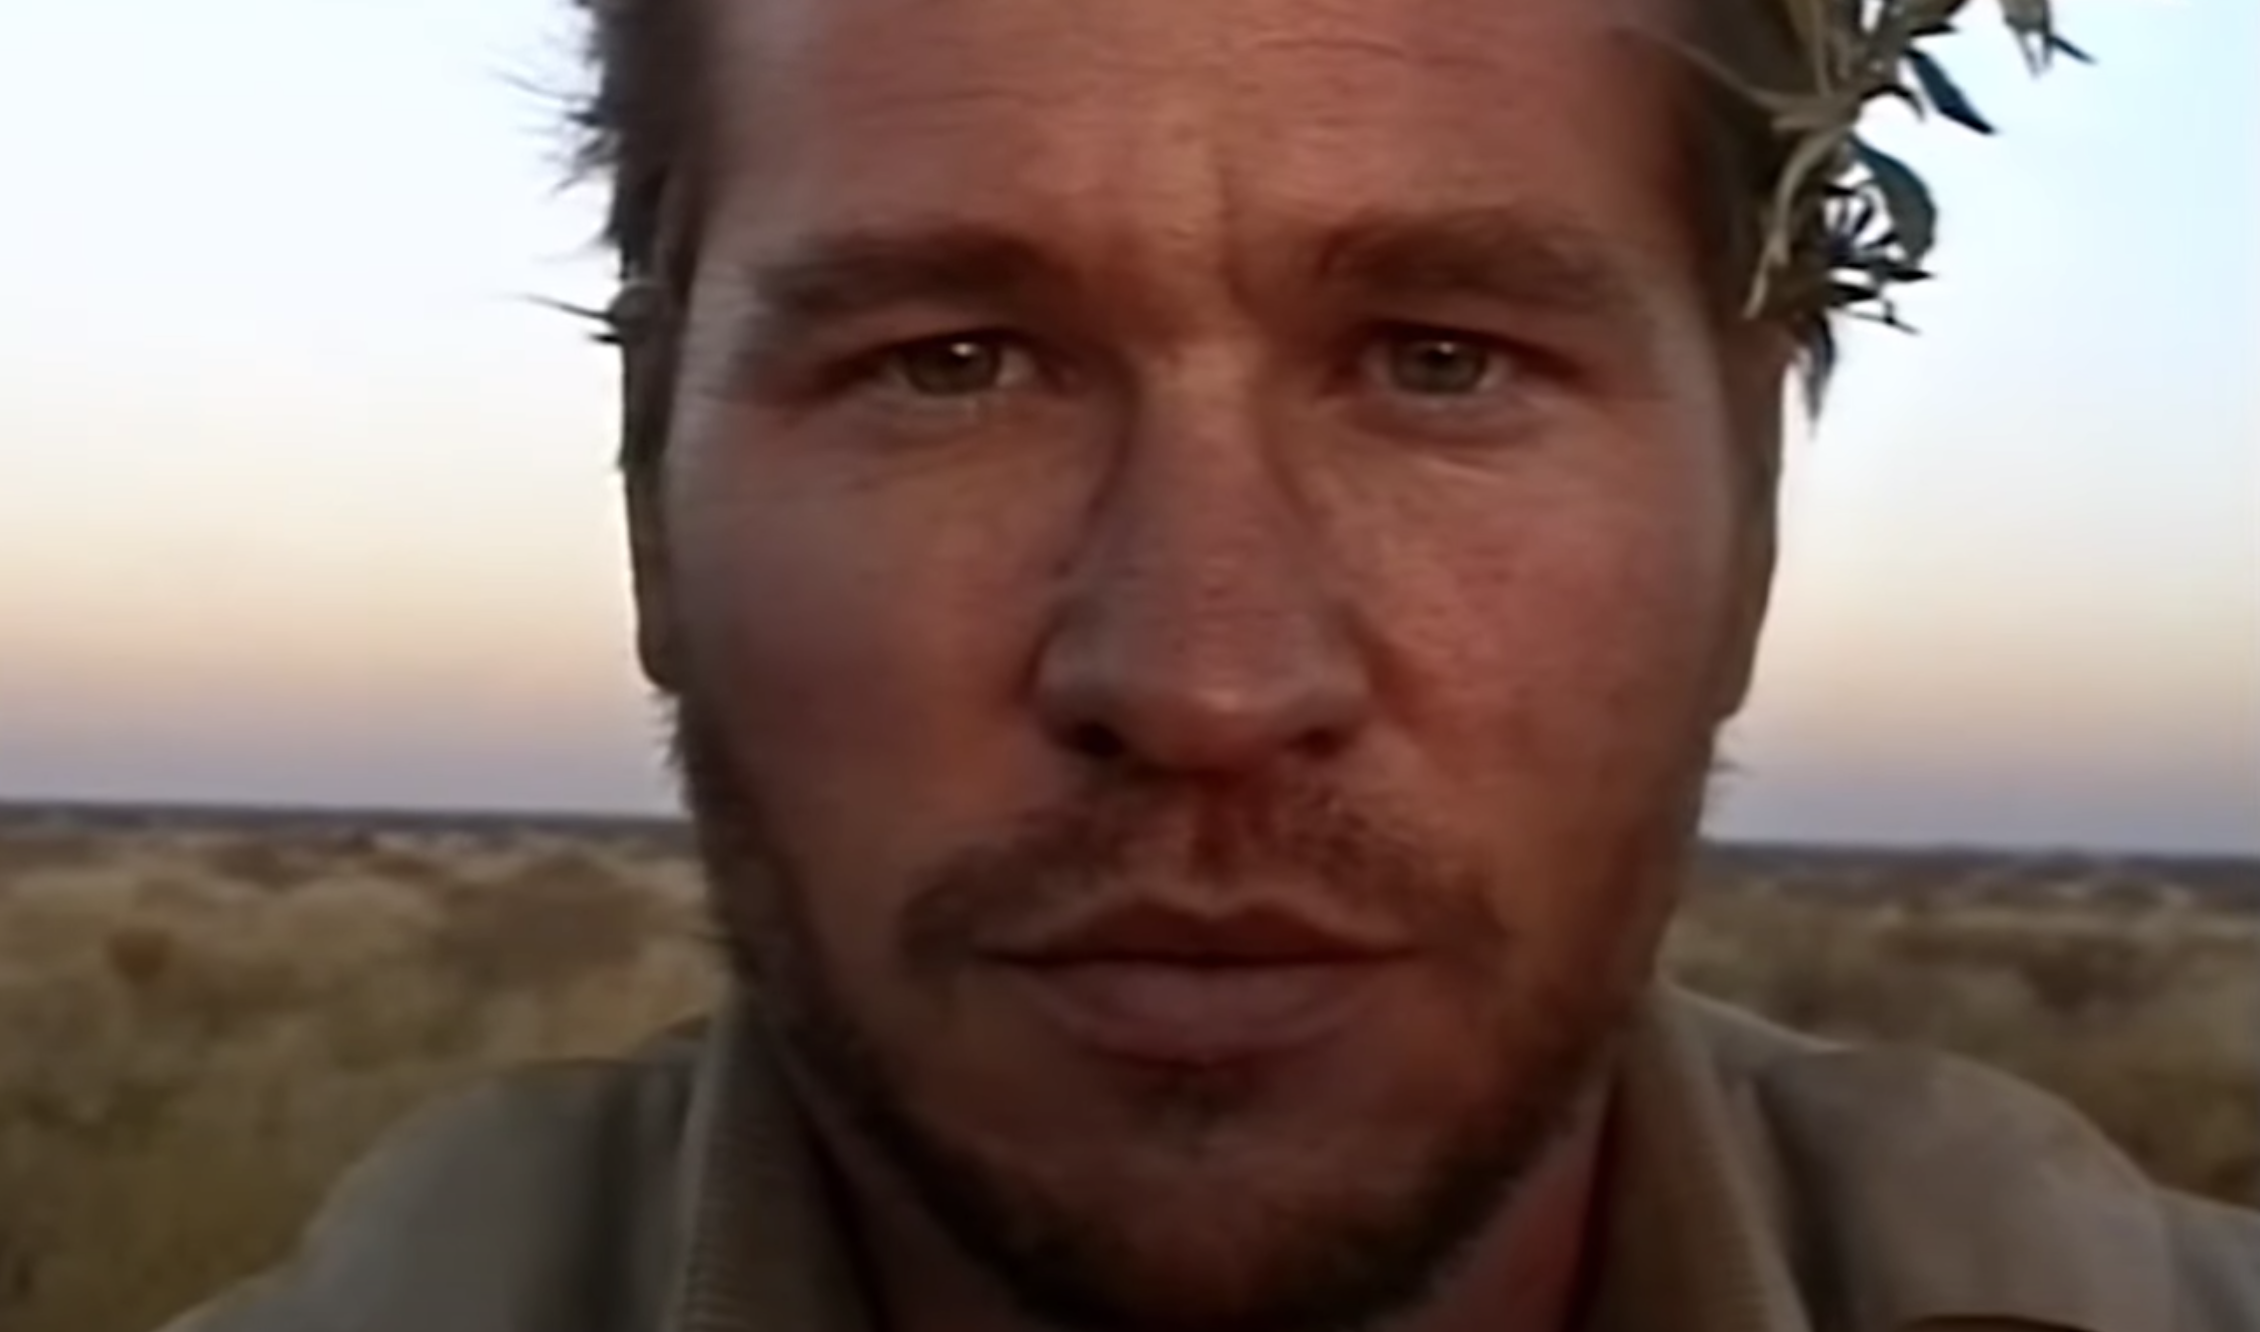 Val' Review: Kilmer Documentary Portrait Is Skin Deep | IndieWire